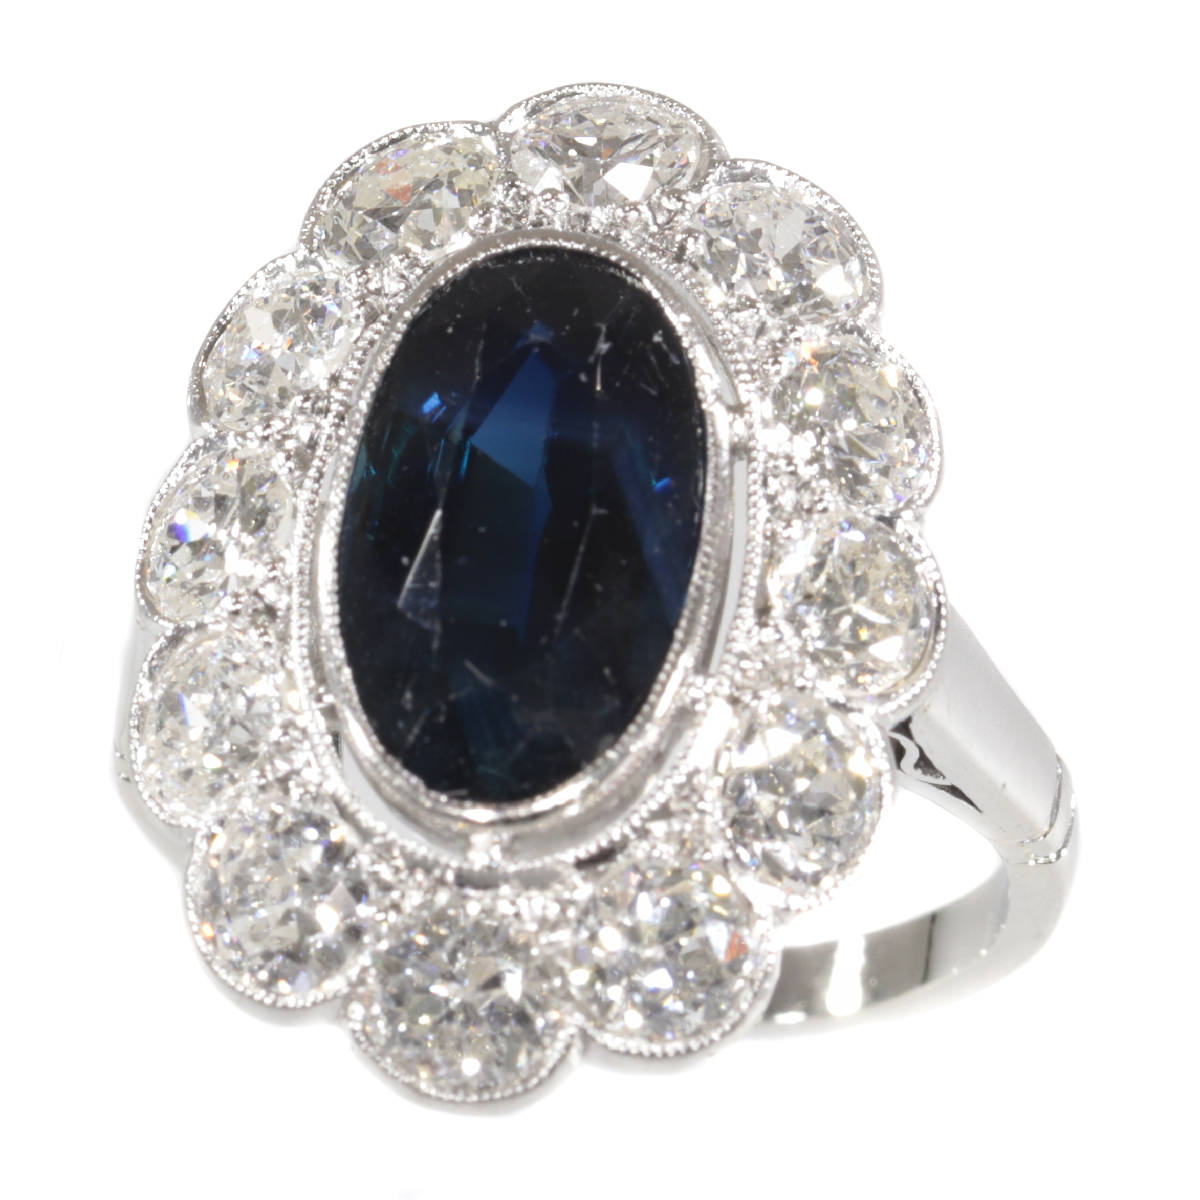 Vintage 1950's platinum diamond and sapphire engagement ring - lady Di style